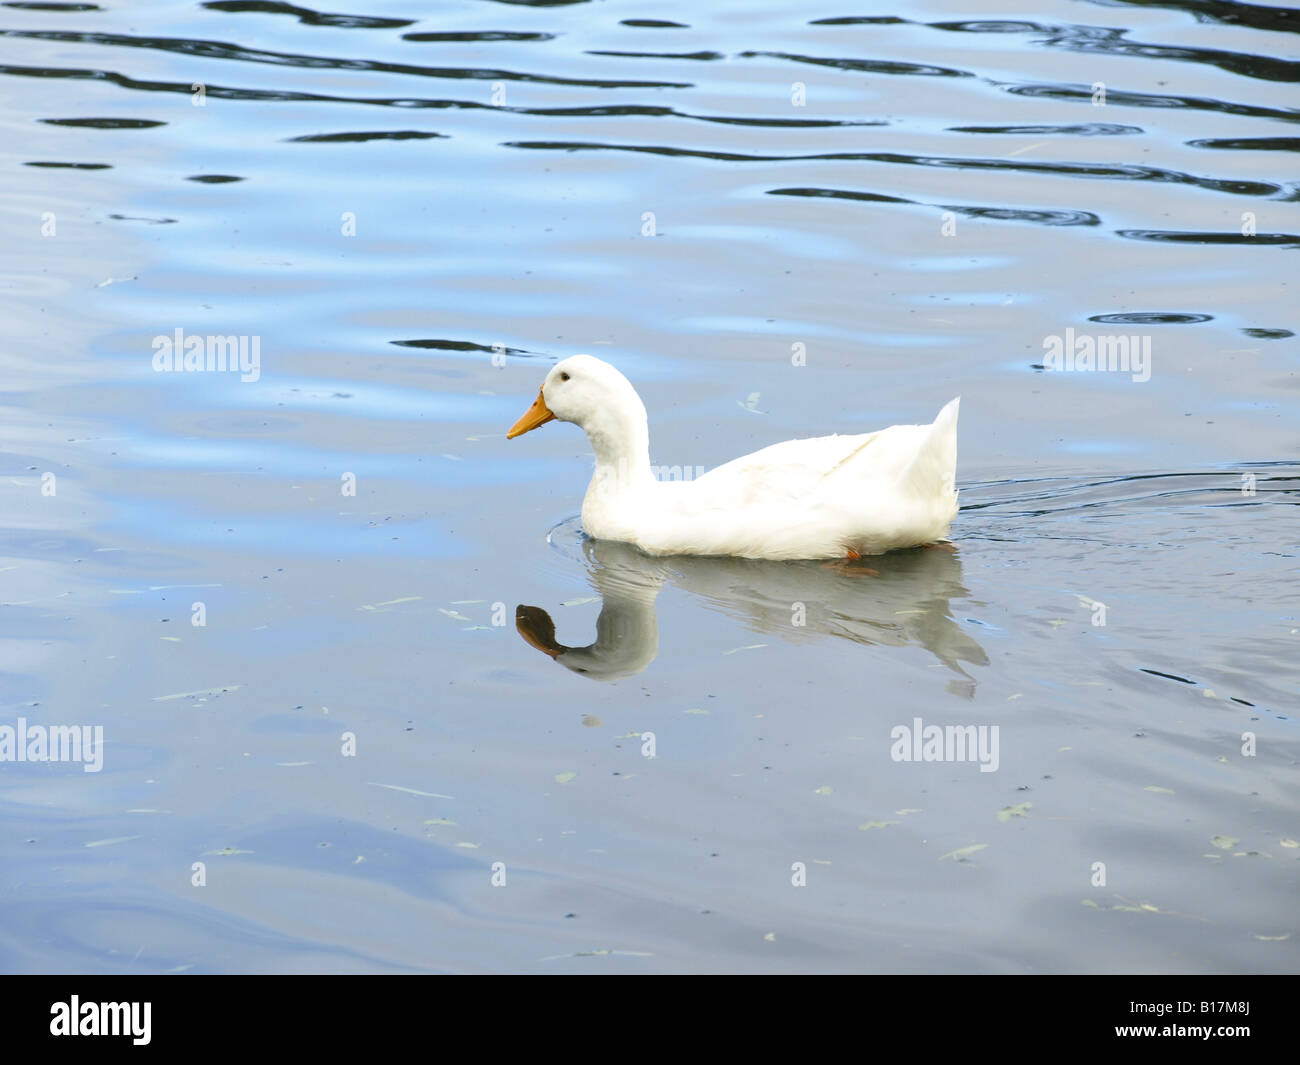 white duck in pond - Stock Image